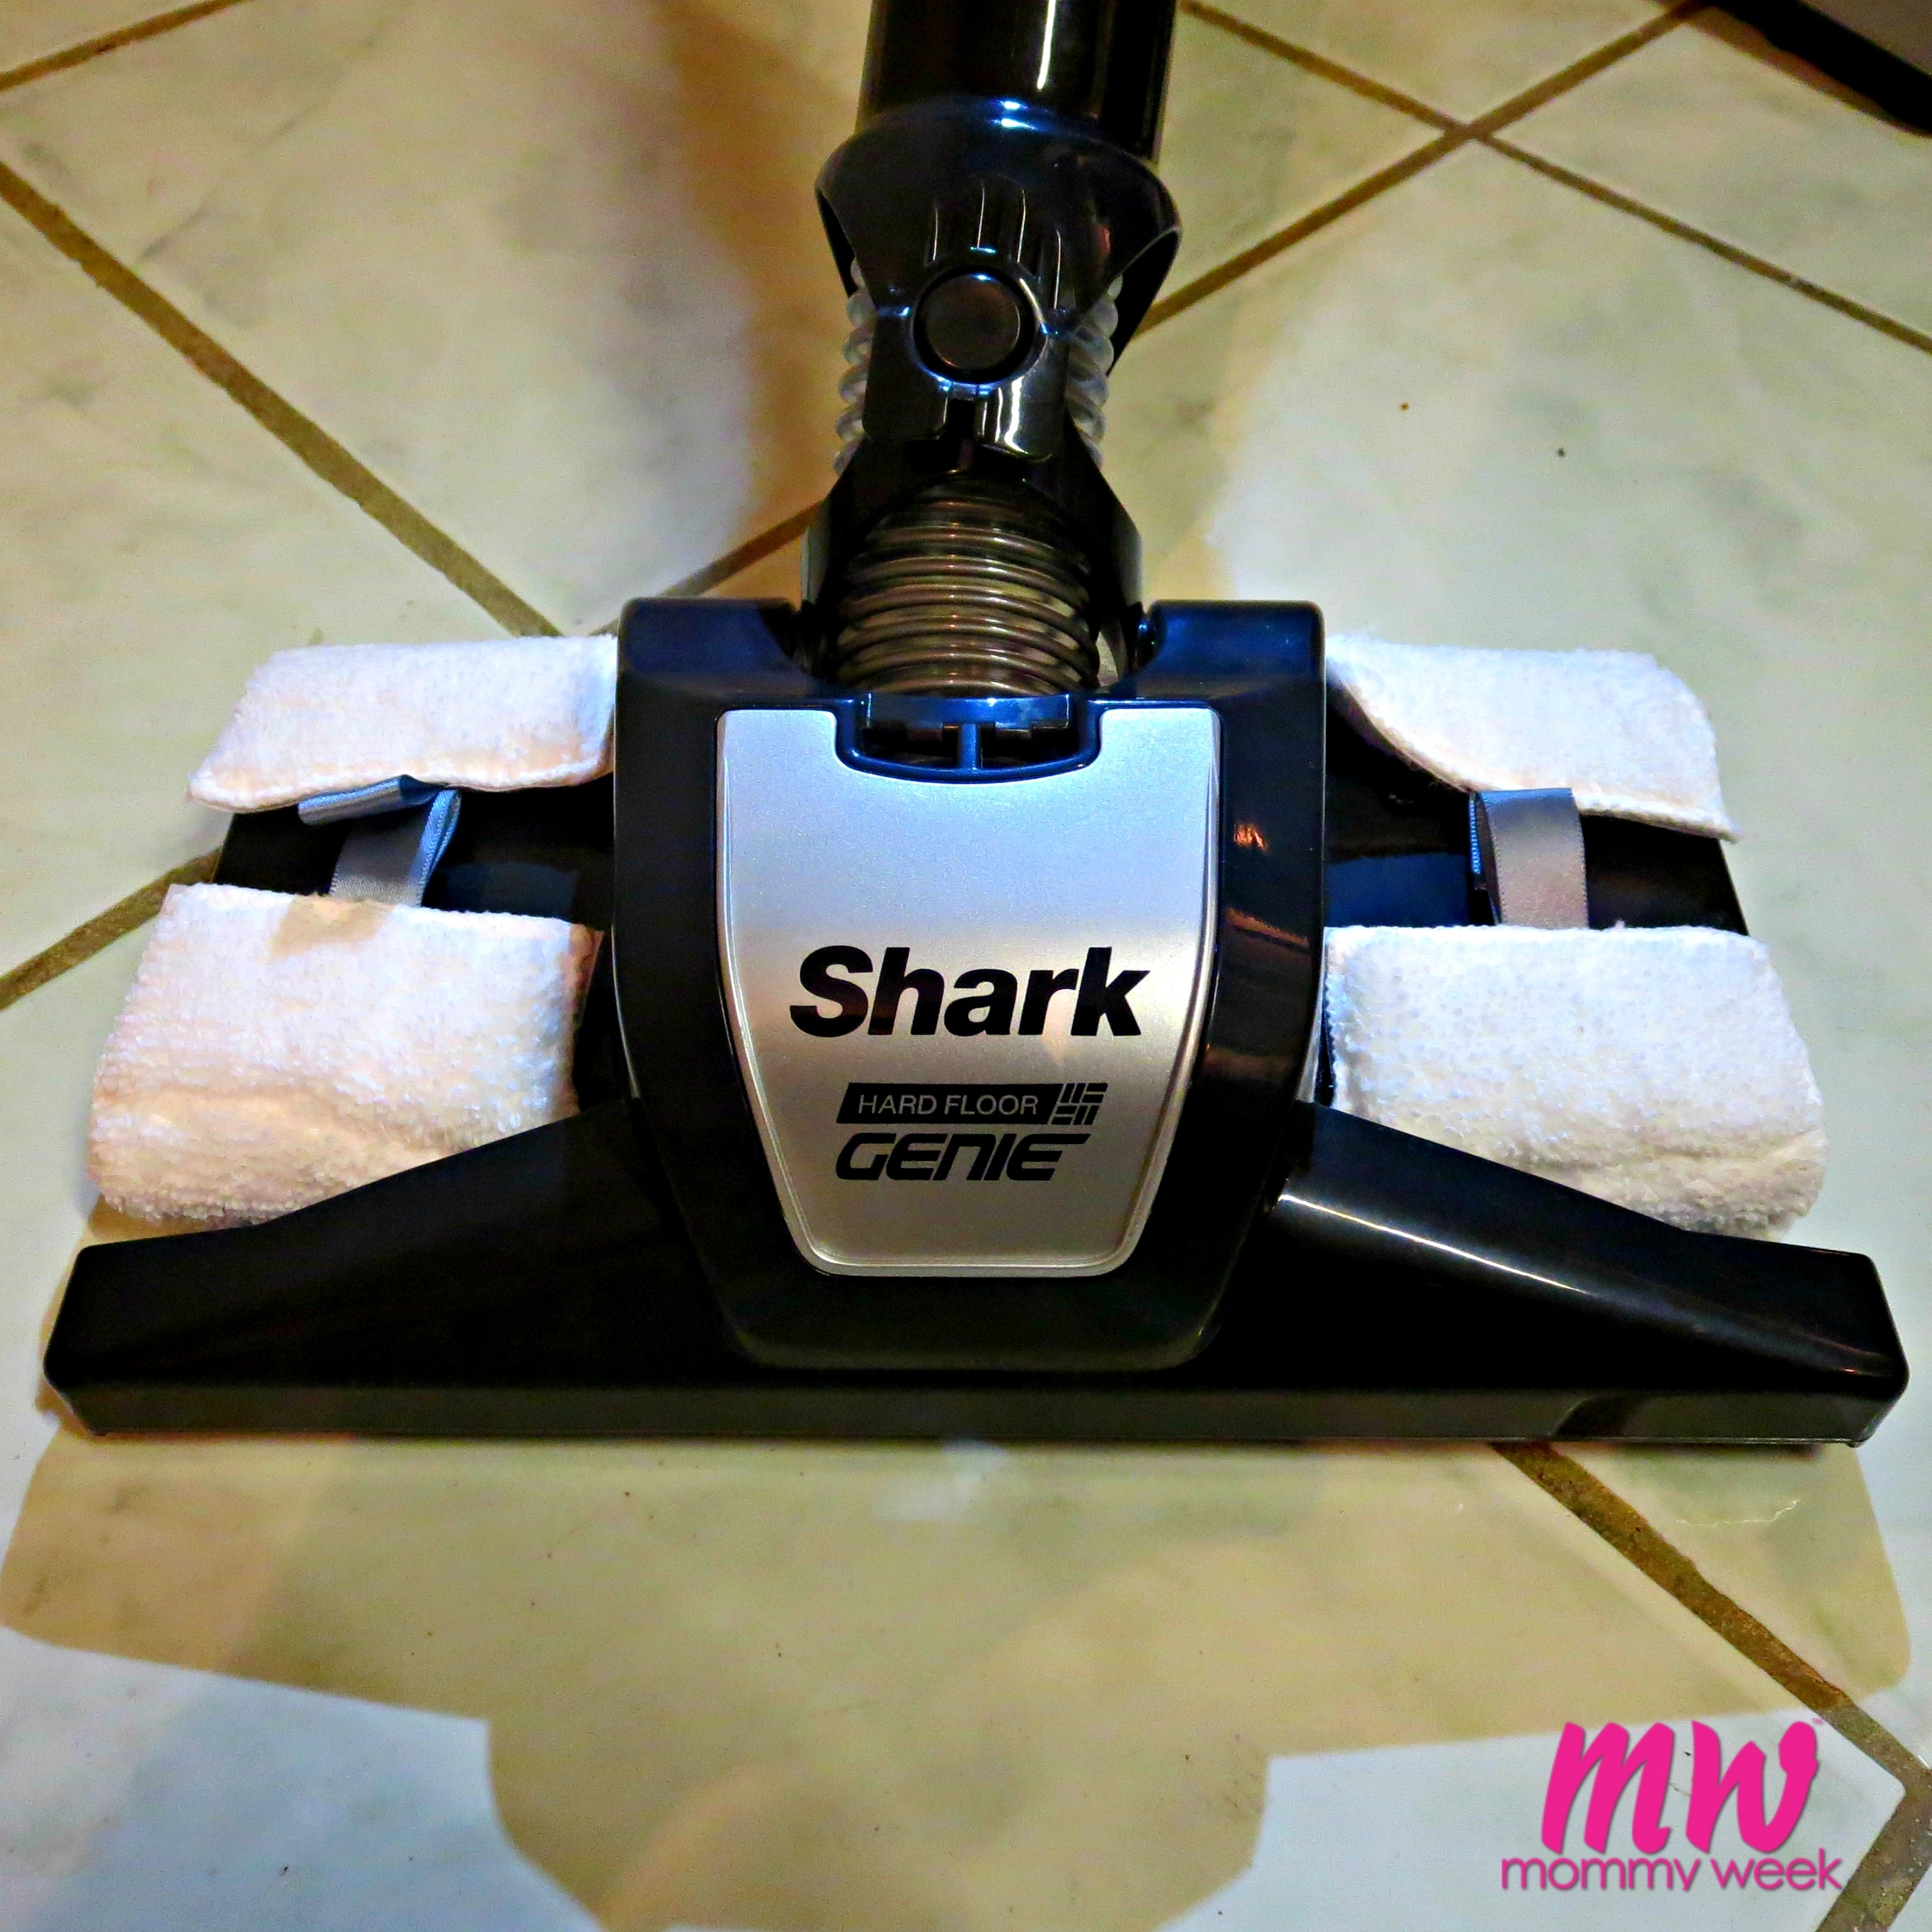 Shark Rotator For Wood Floors